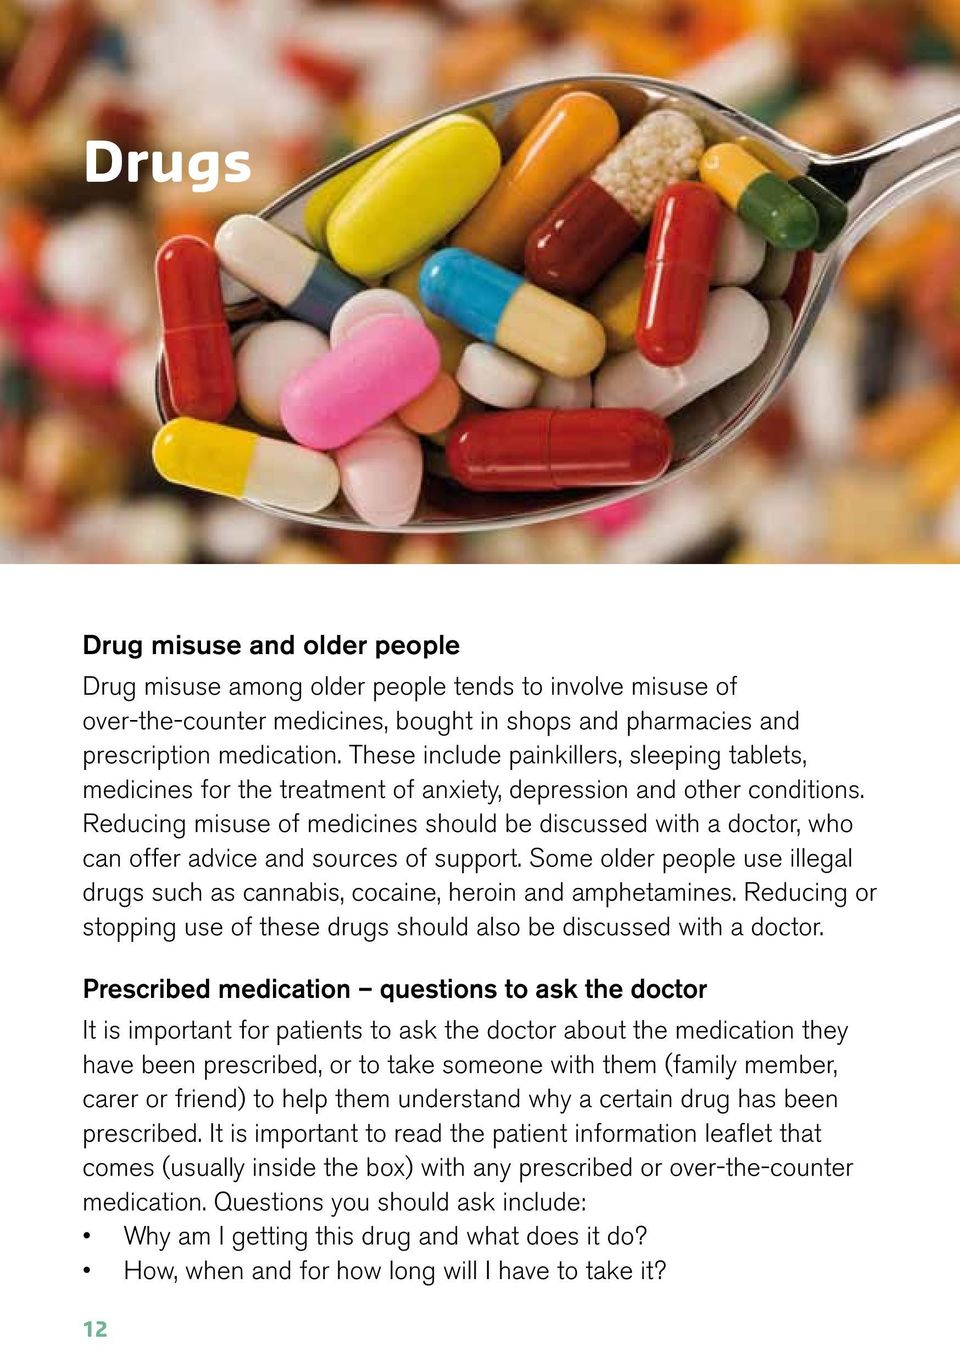 Reducing misuse of medicines should be discussed with a doctor, who can offer advice and sources of support. Some older people use illegal drugs such as cannabis, cocaine, heroin and amphetamines.